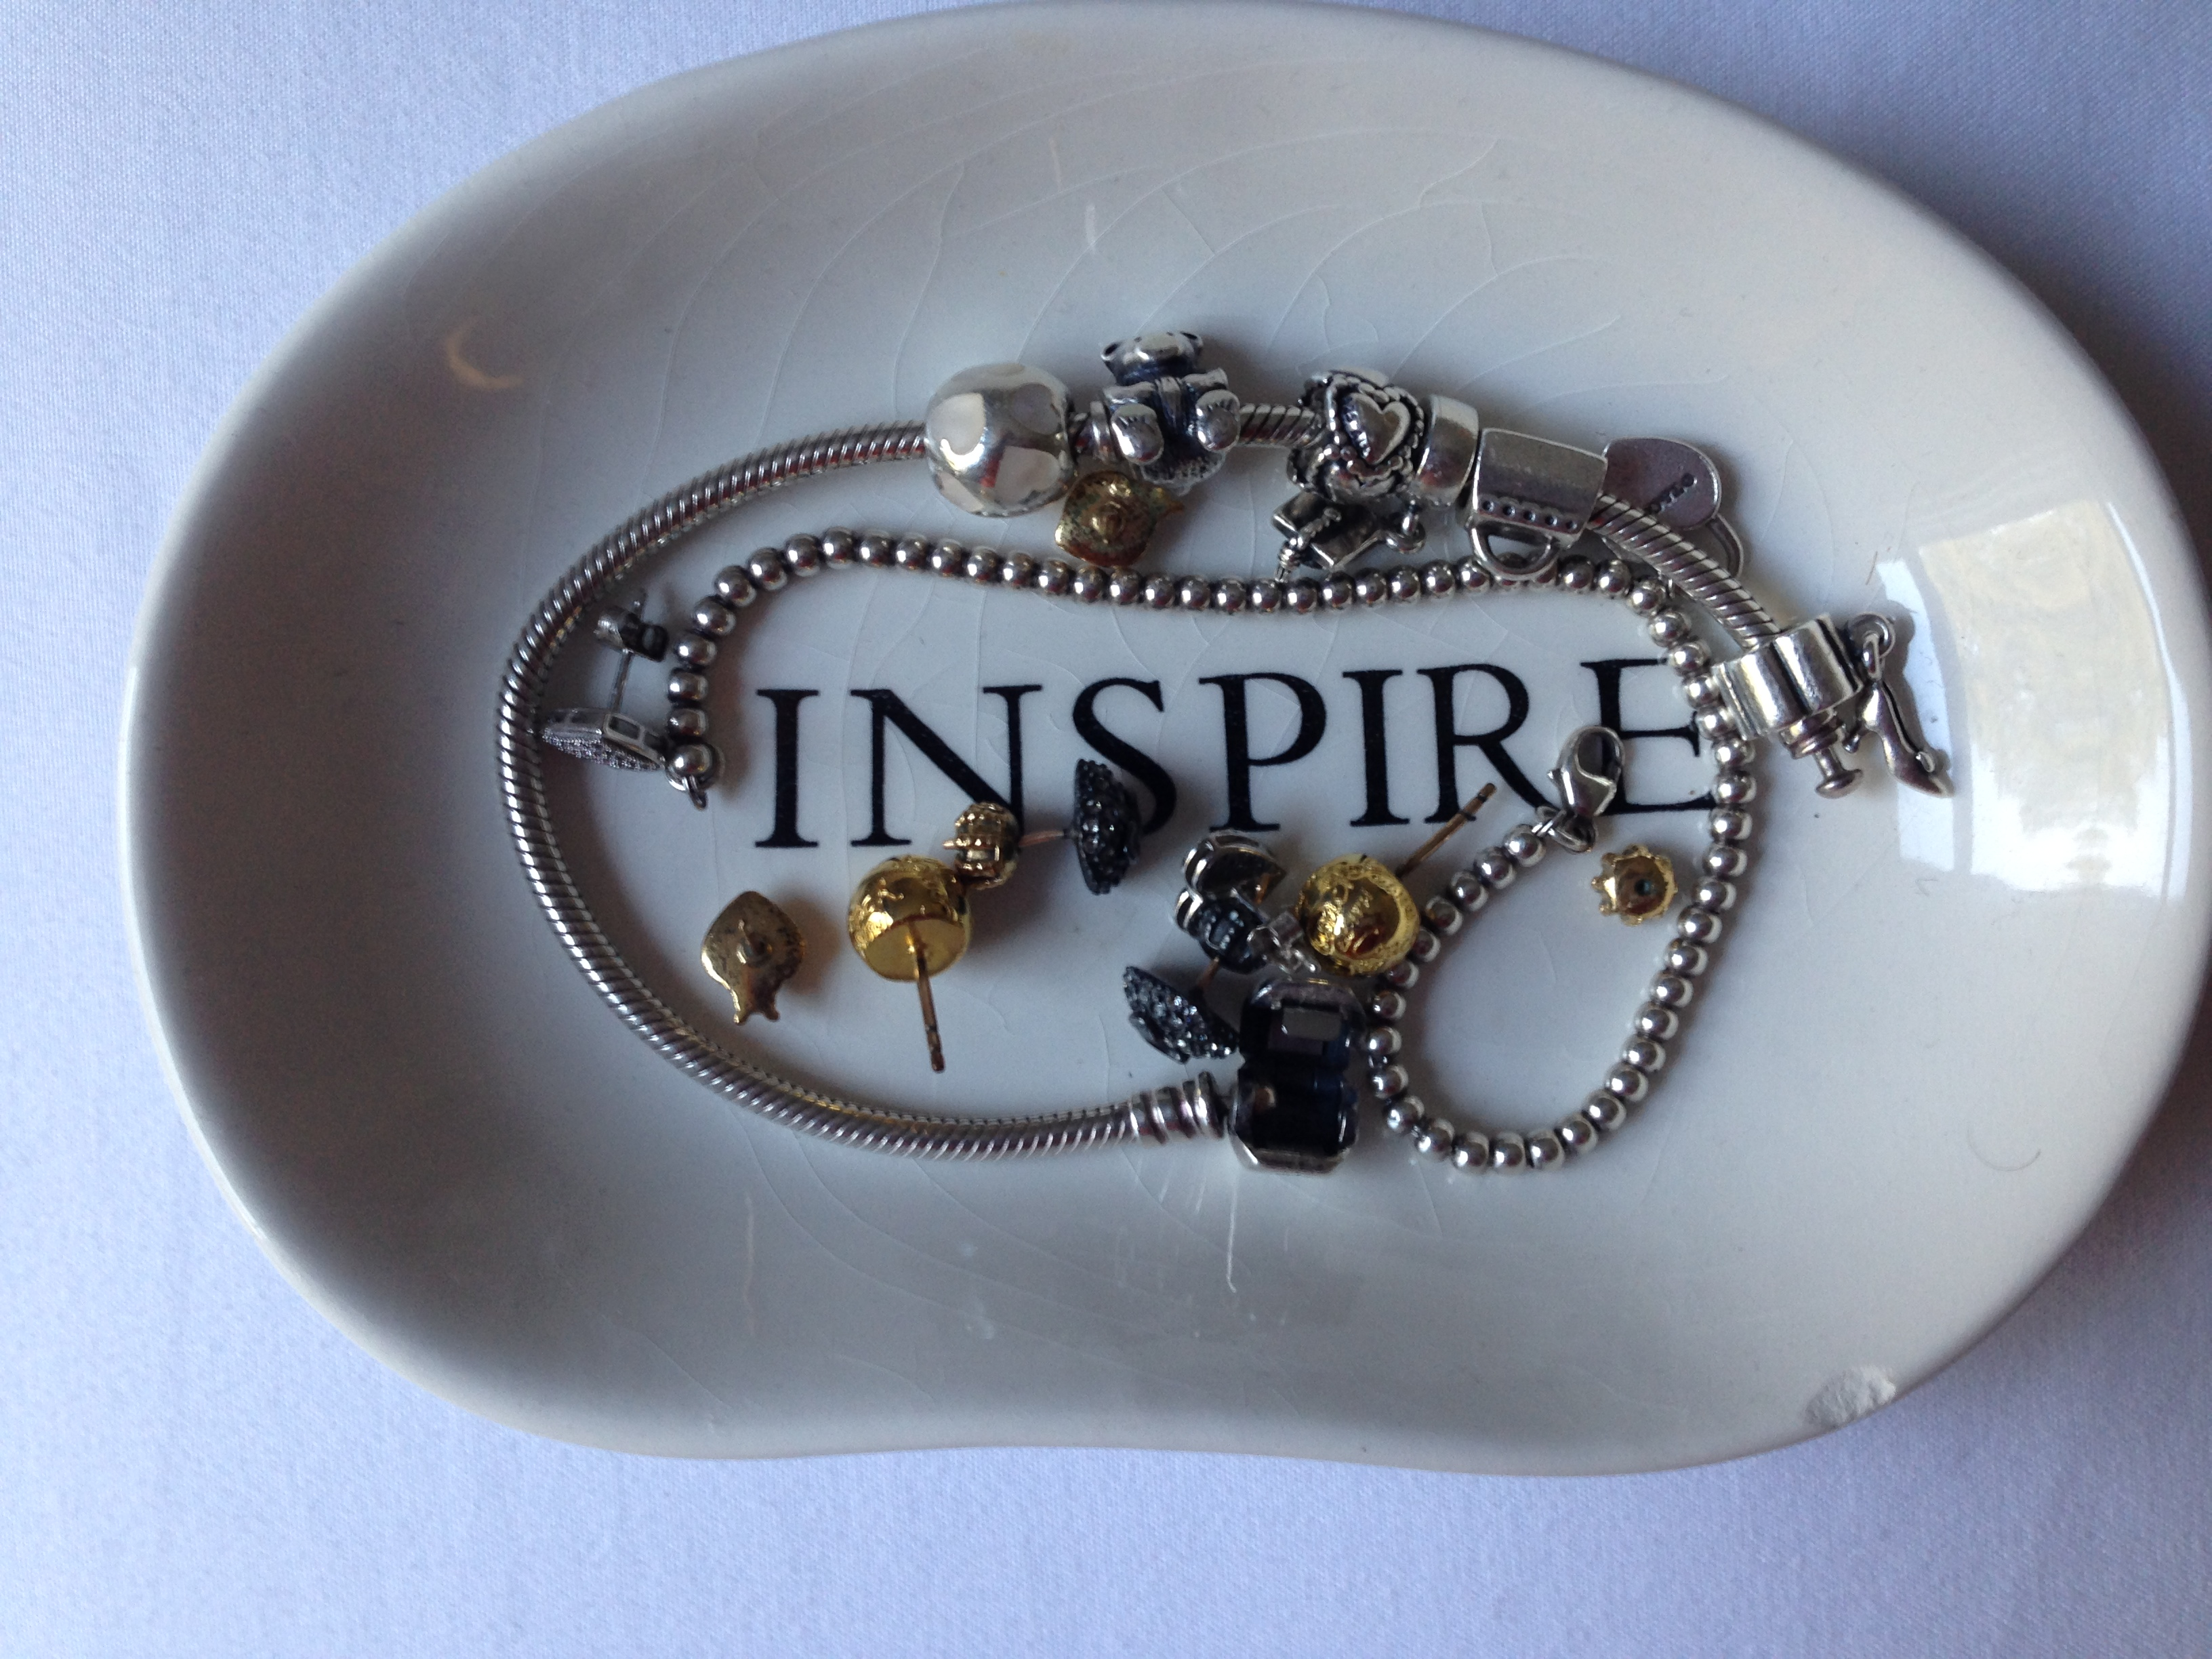 what inspires me edgeofgloryny words are powerful i love everything chic and glamorous this jewelry tray screams fabolousity the word inspire reminds me to be the best person i can